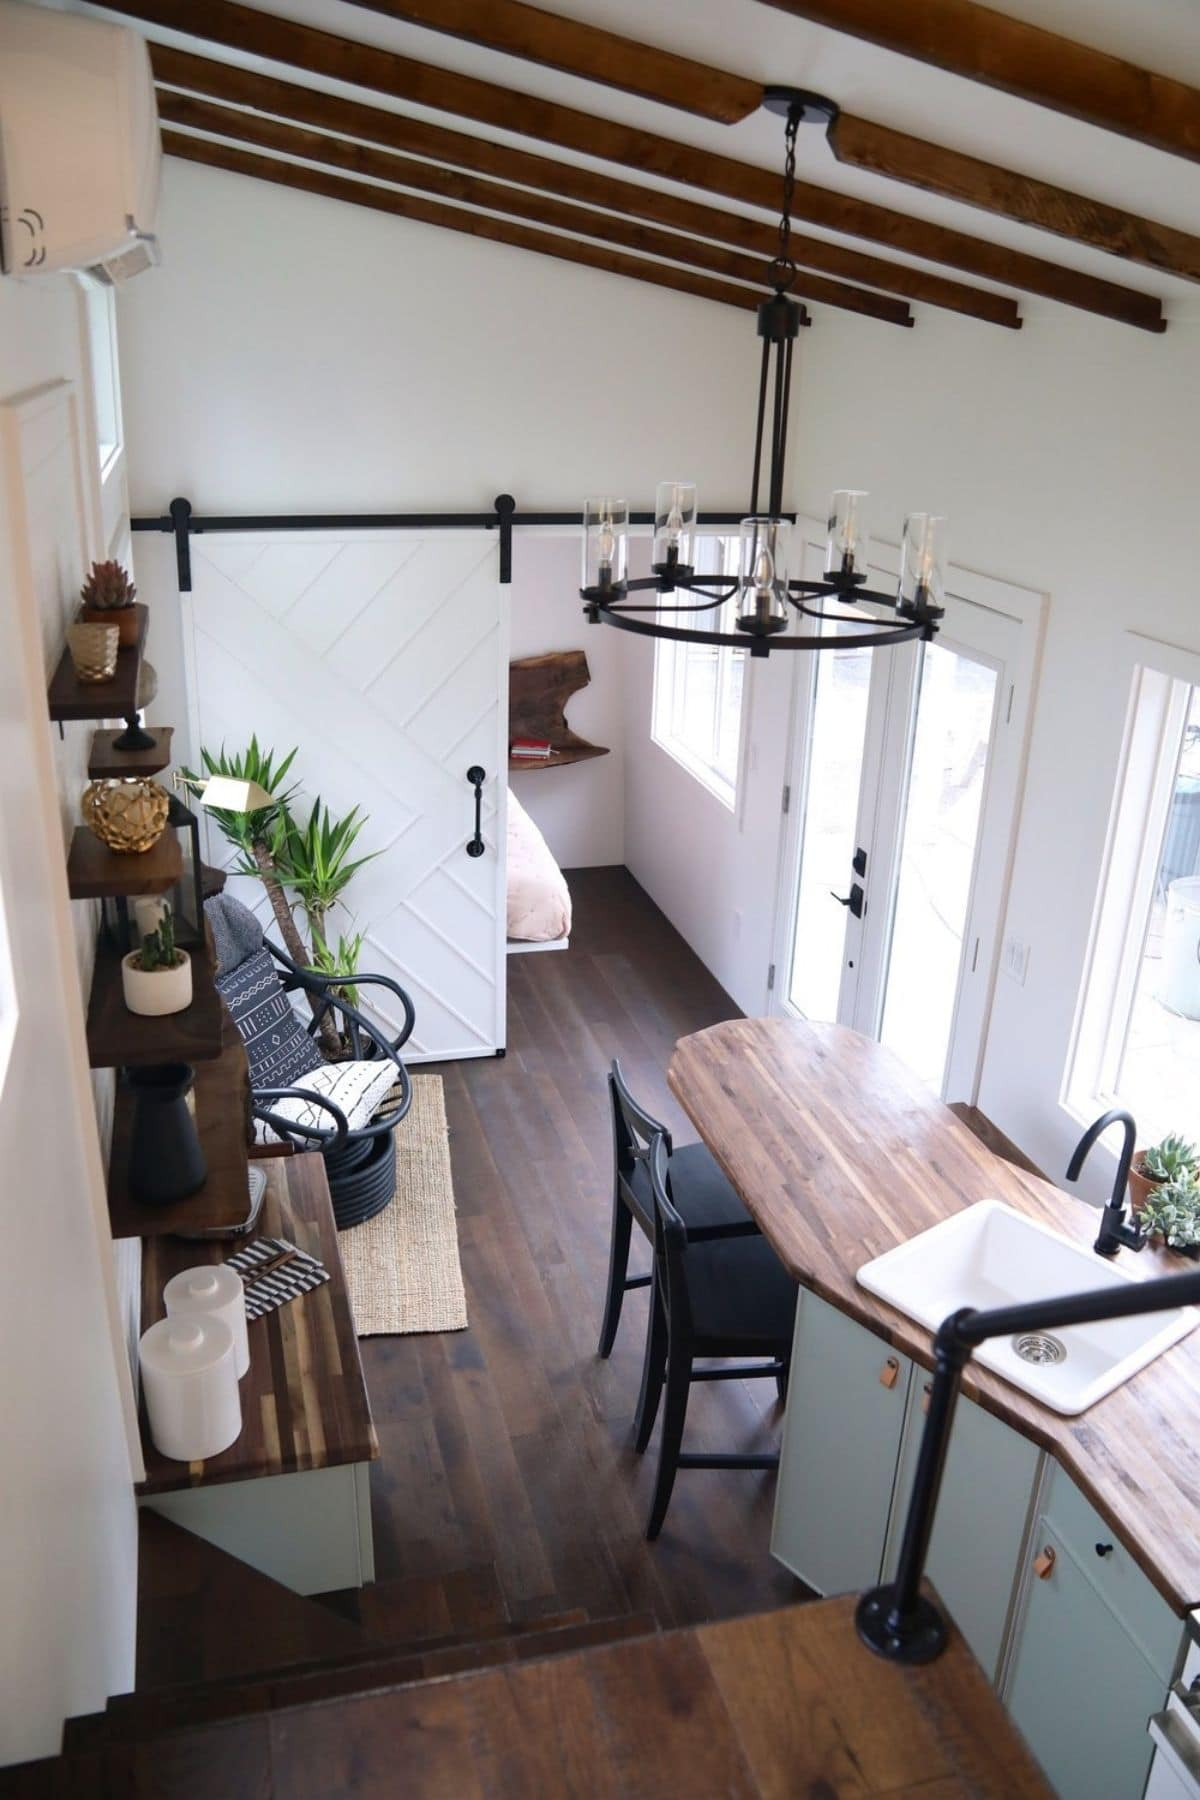 View from loft into tiny house living room and kitchen